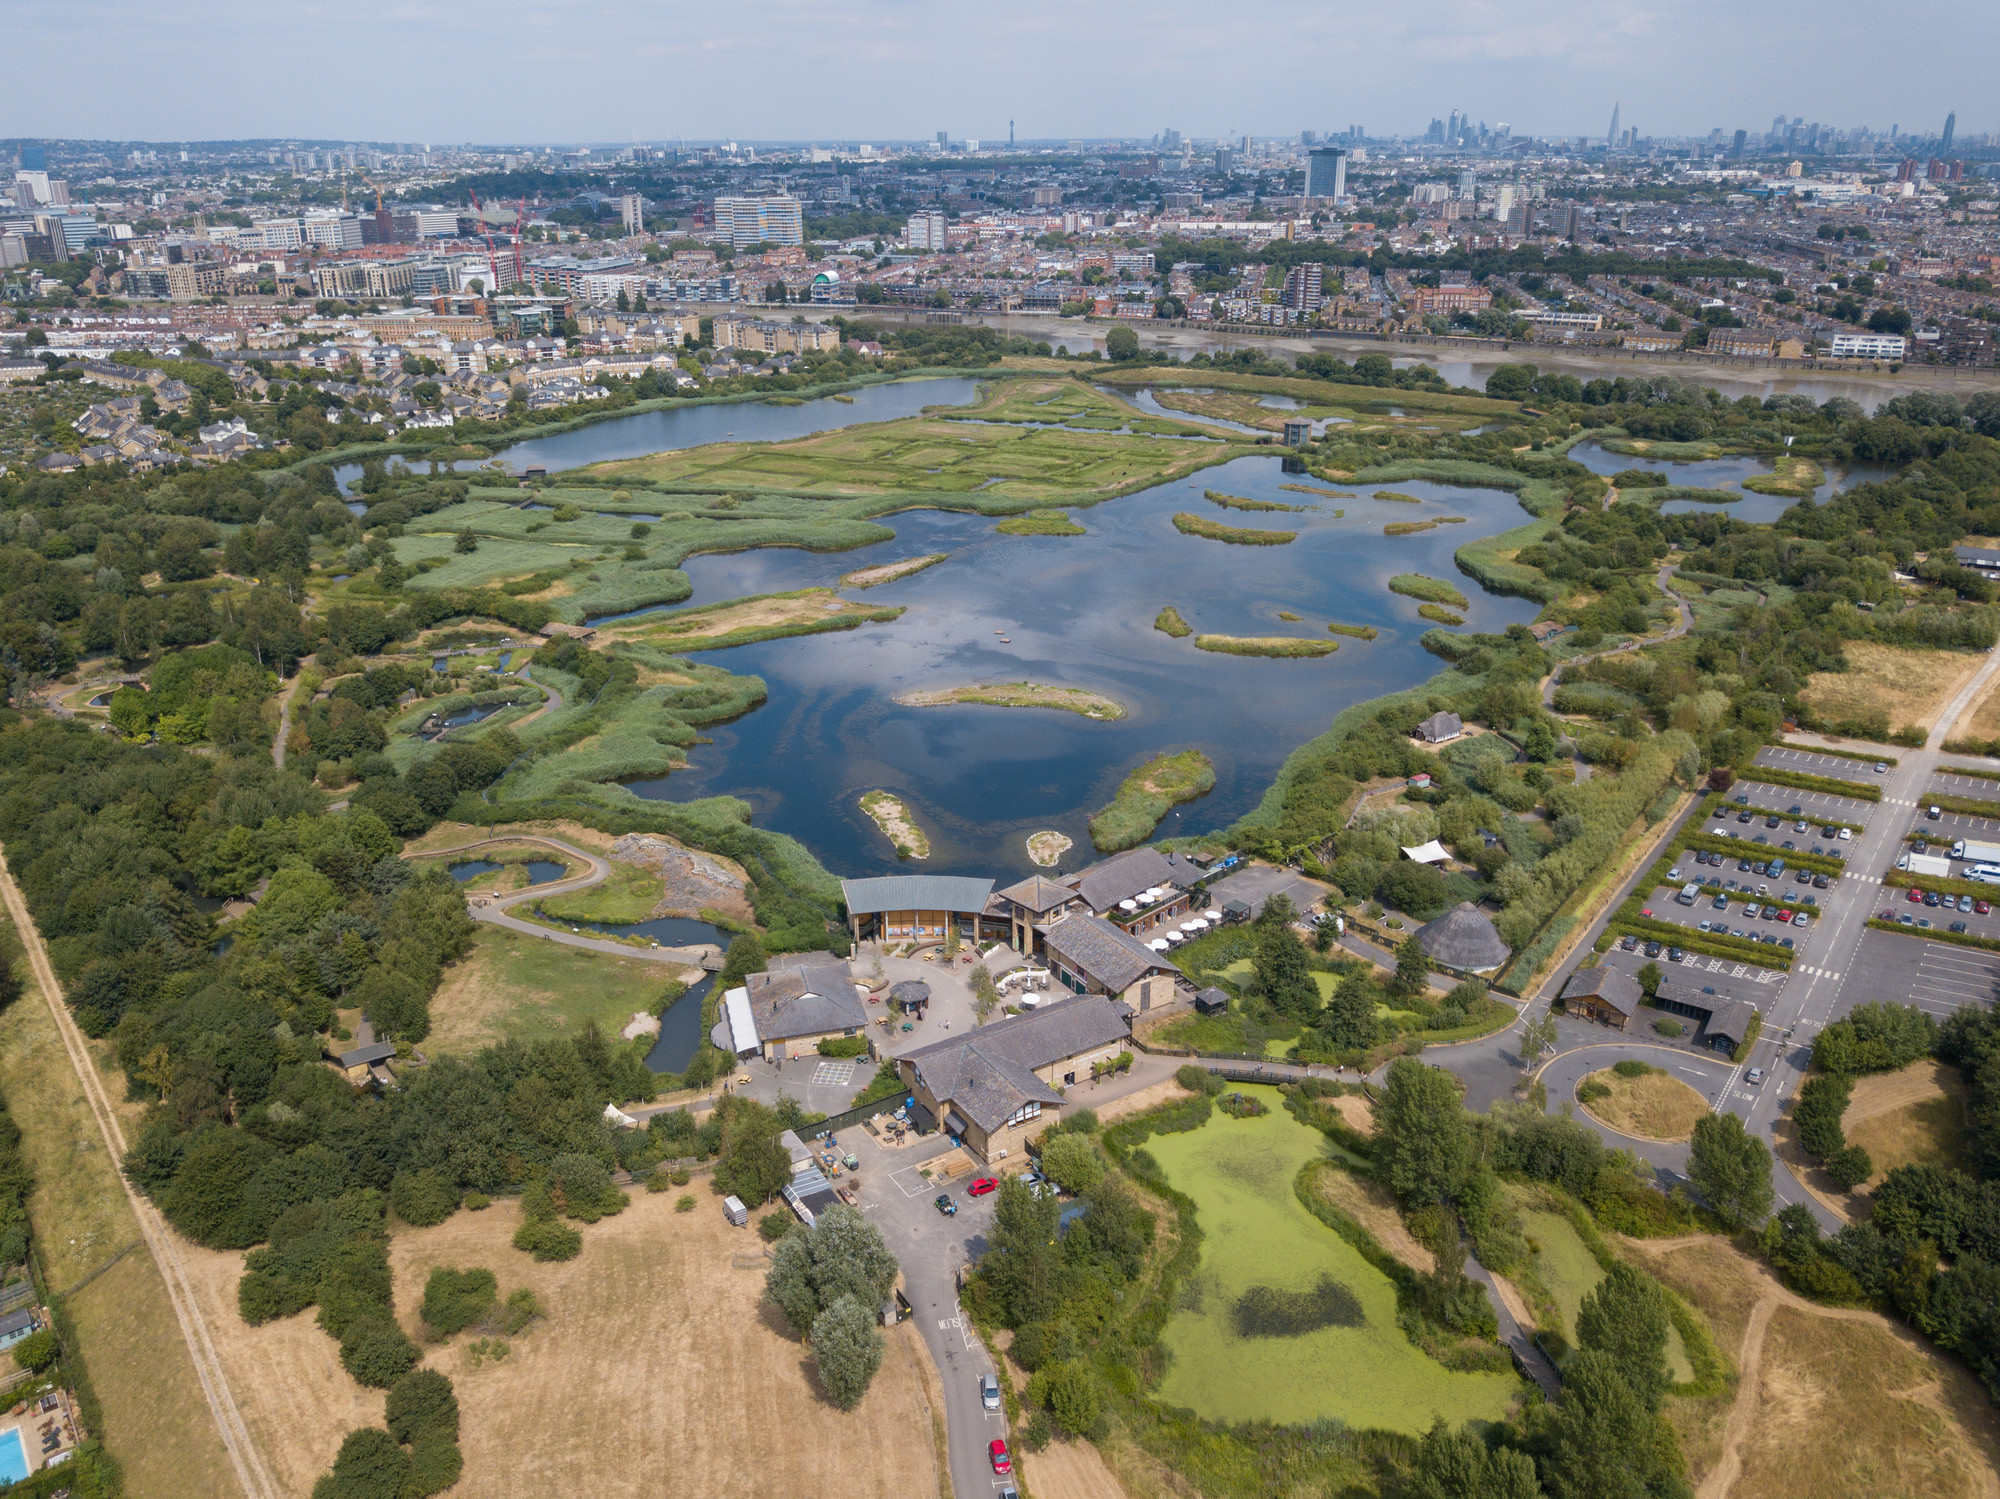 The Importance of Urban Wetlands